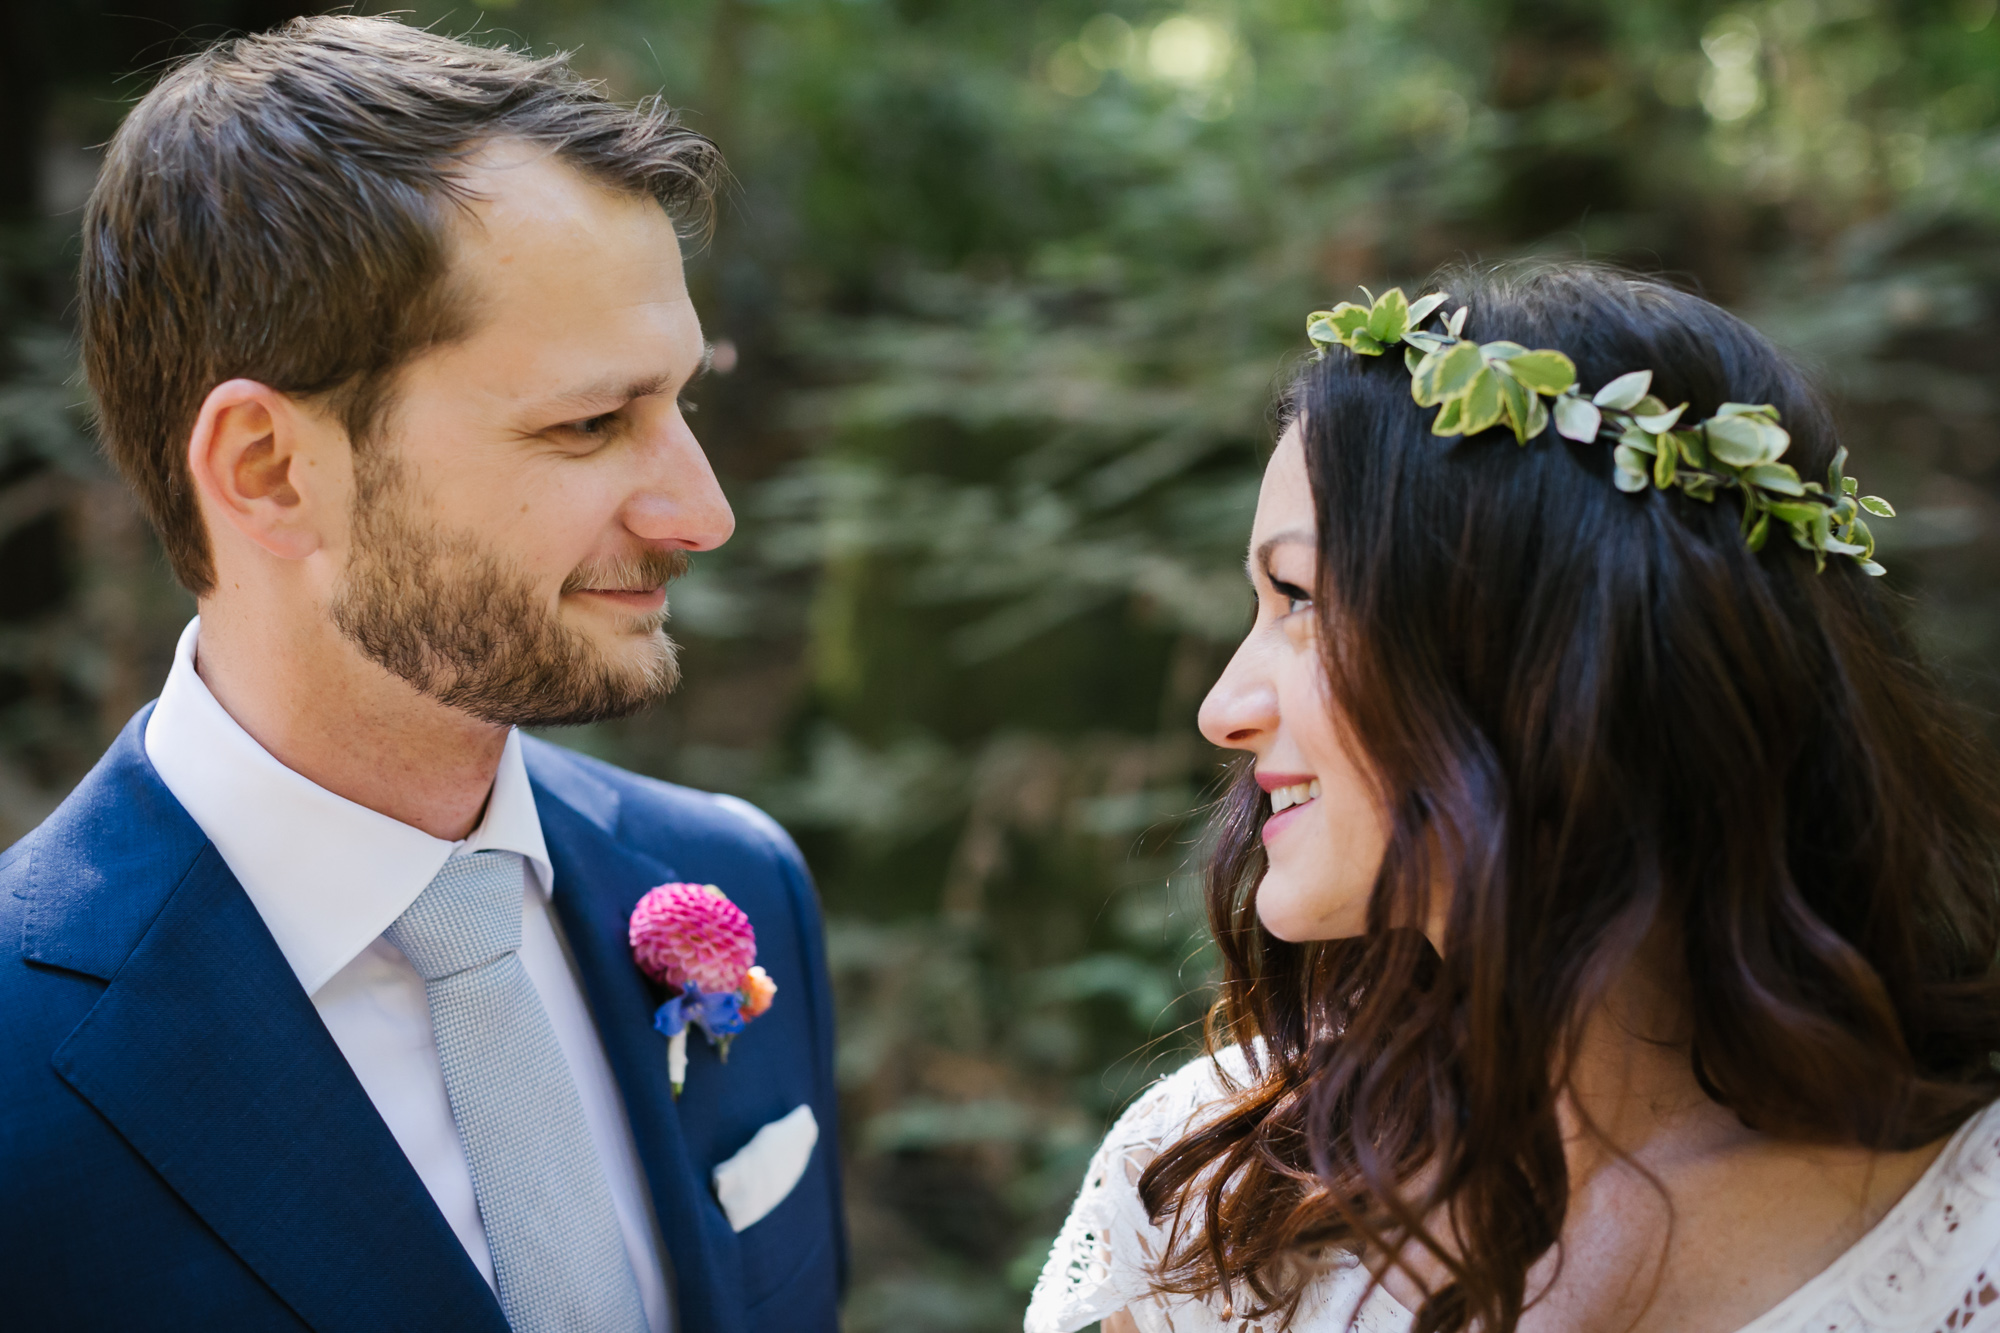 Groom wearing a blue suit smiles at his bride who has a flower crown